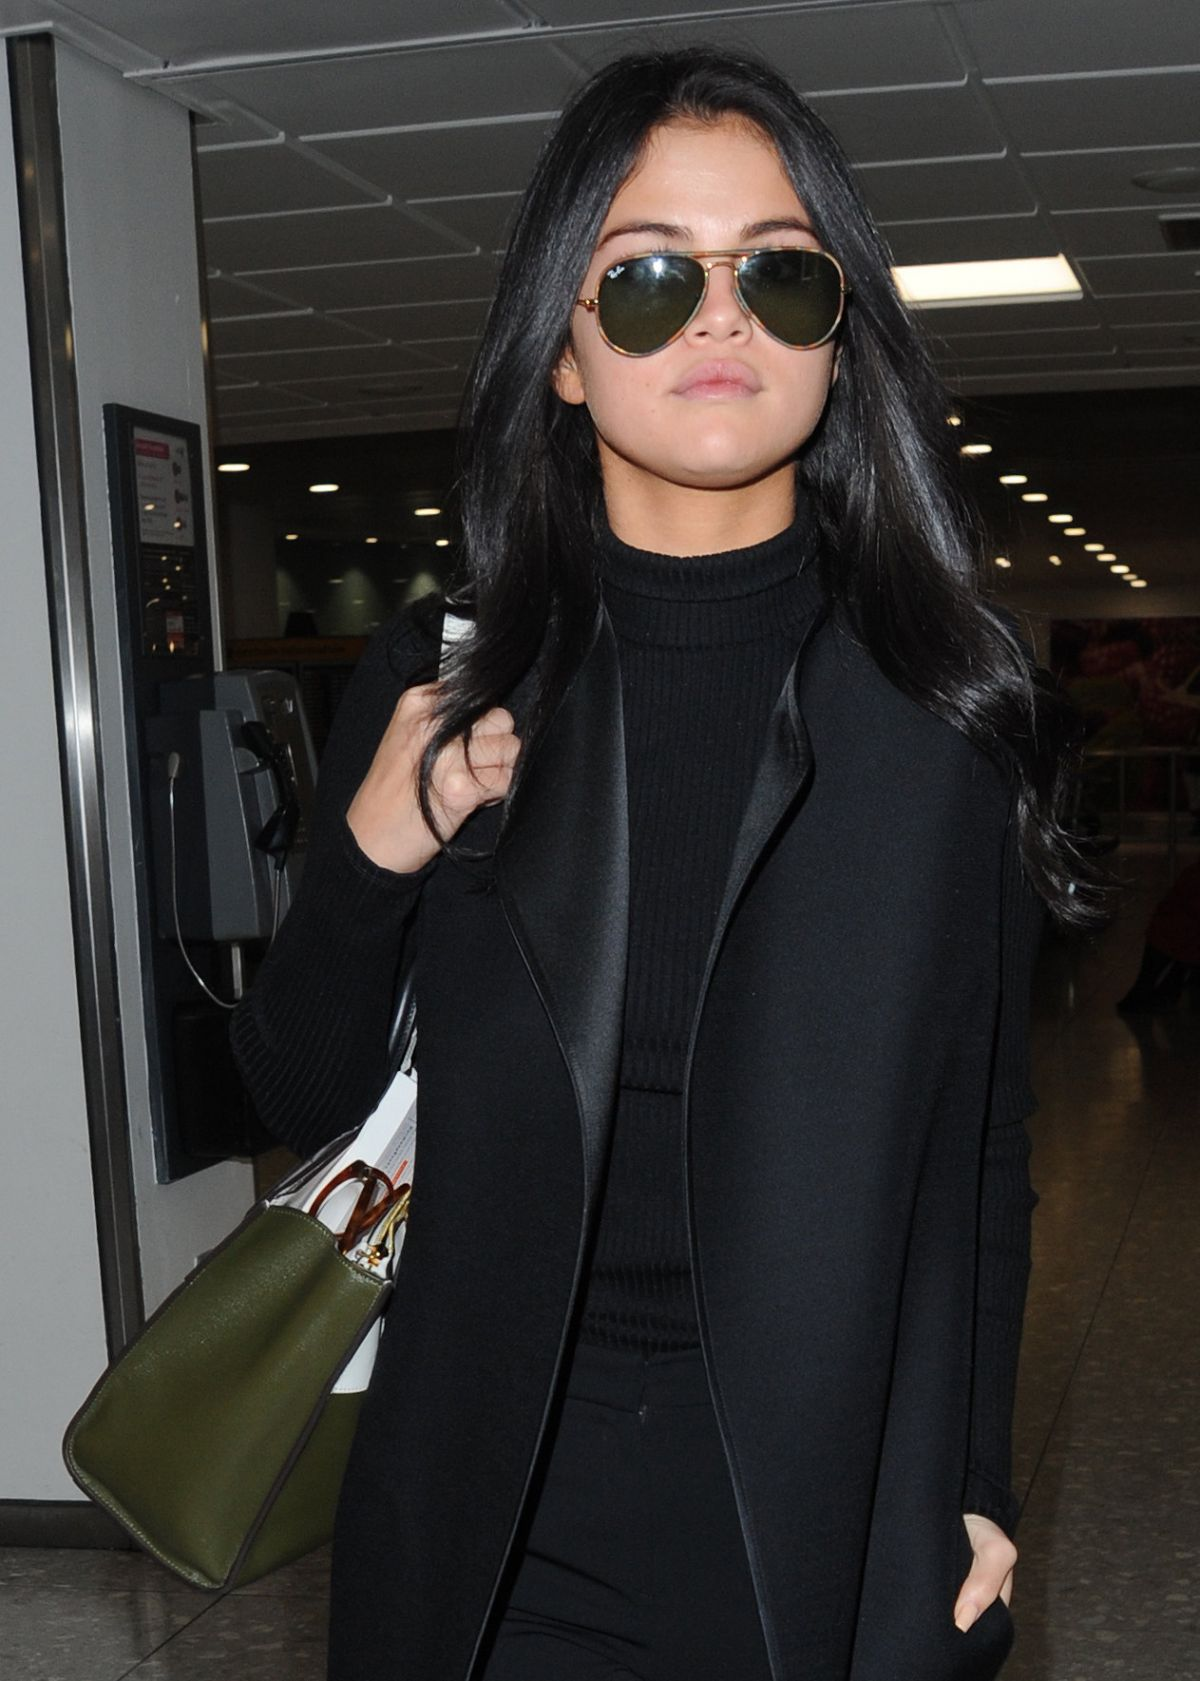 SELENA GOMEZ at Heathrow Airport in London 11/12/2015